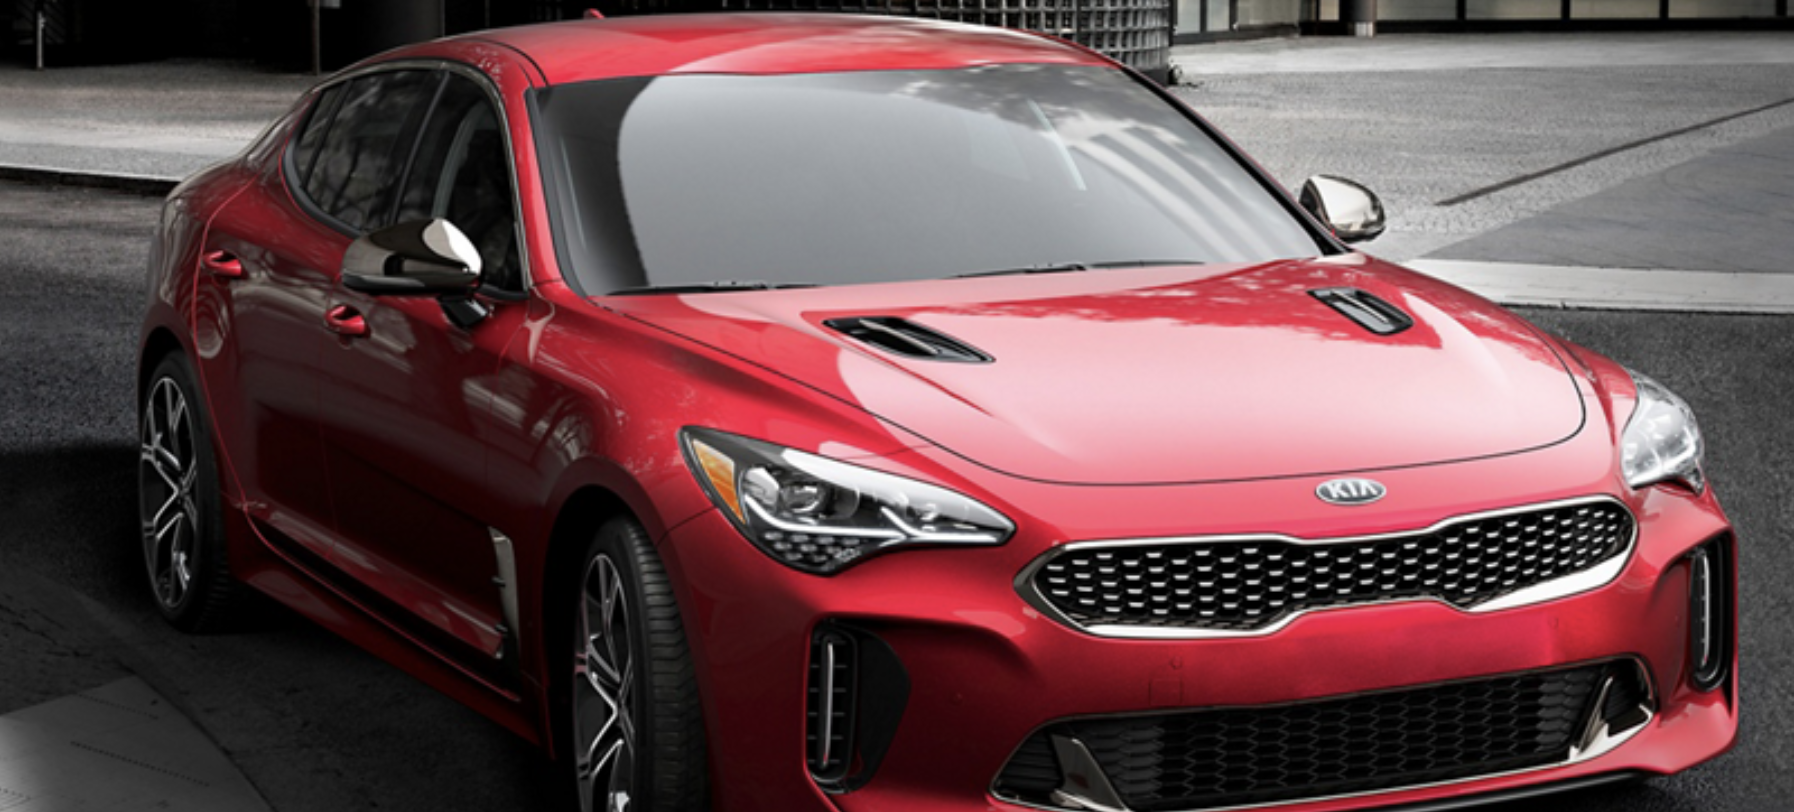 2019 Kia Stinger Safety